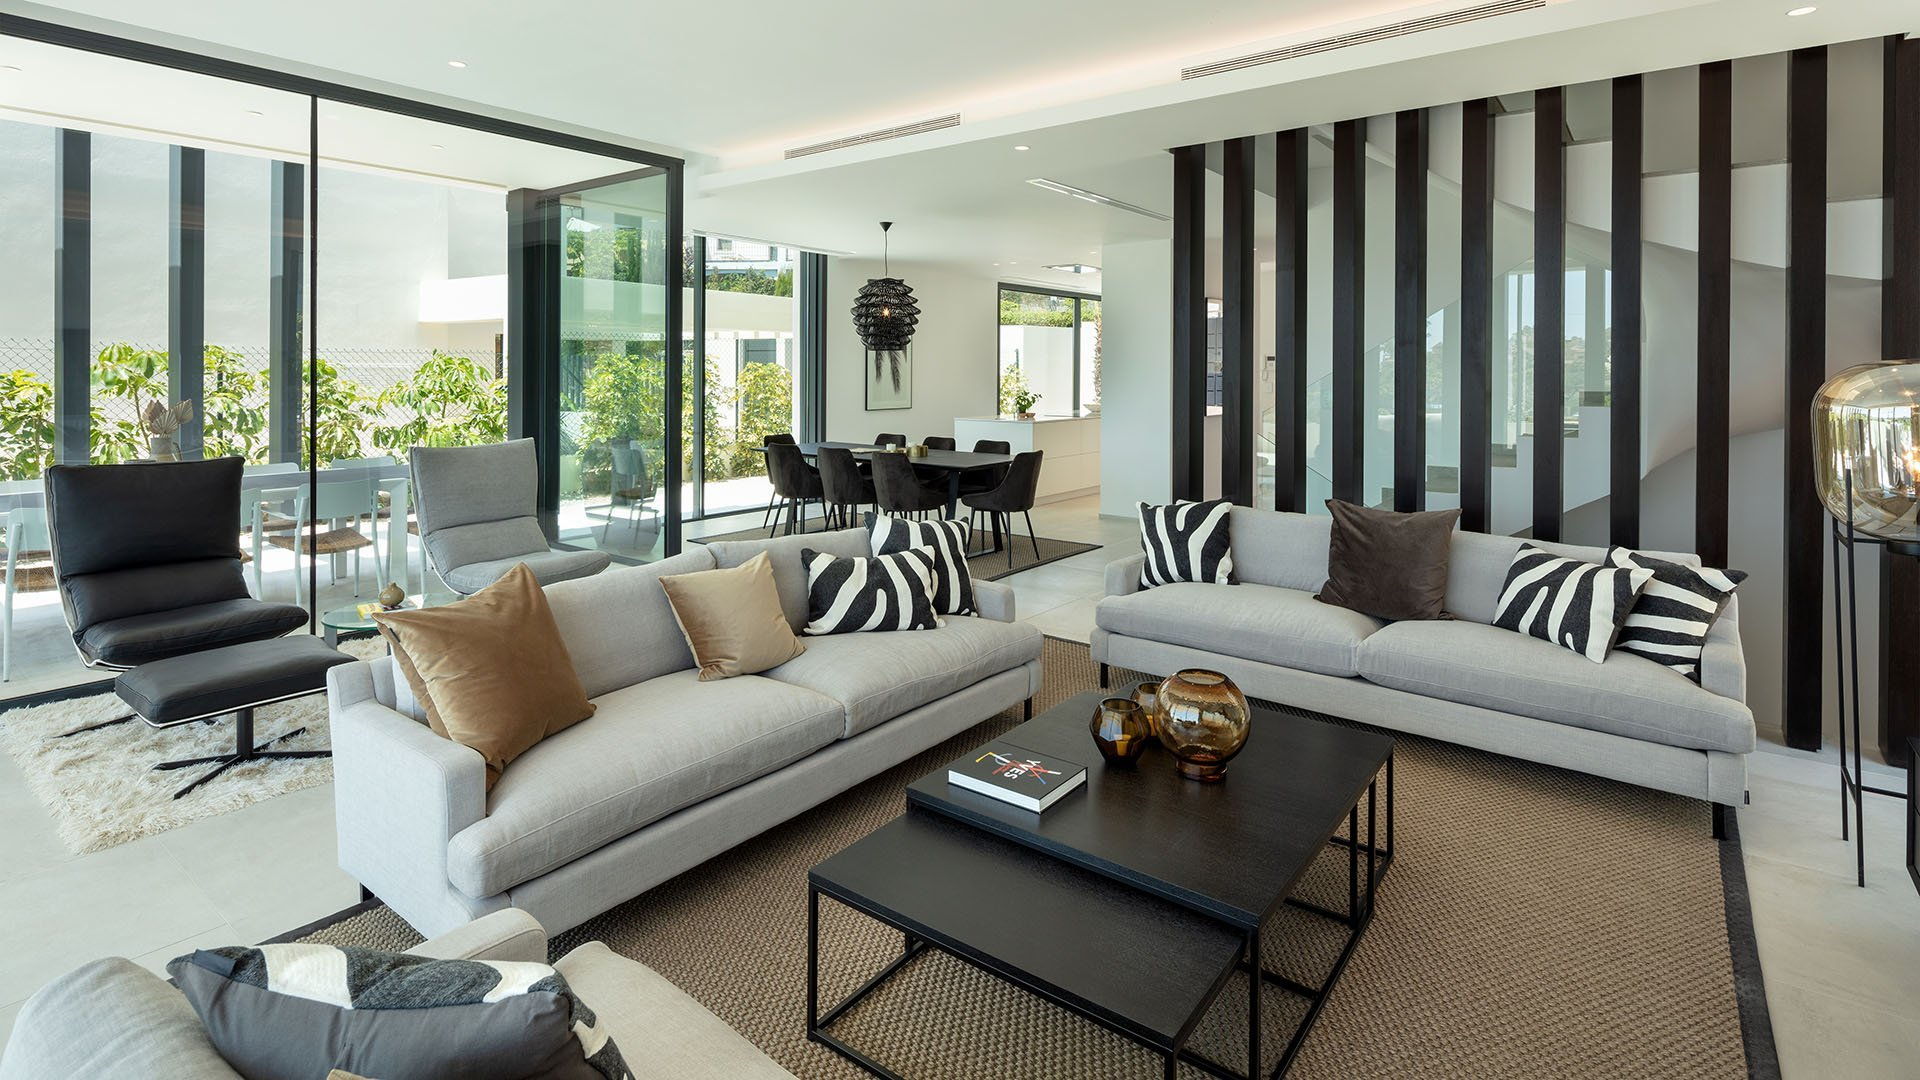 Modern villas in an amazing location on the New Golden Mile